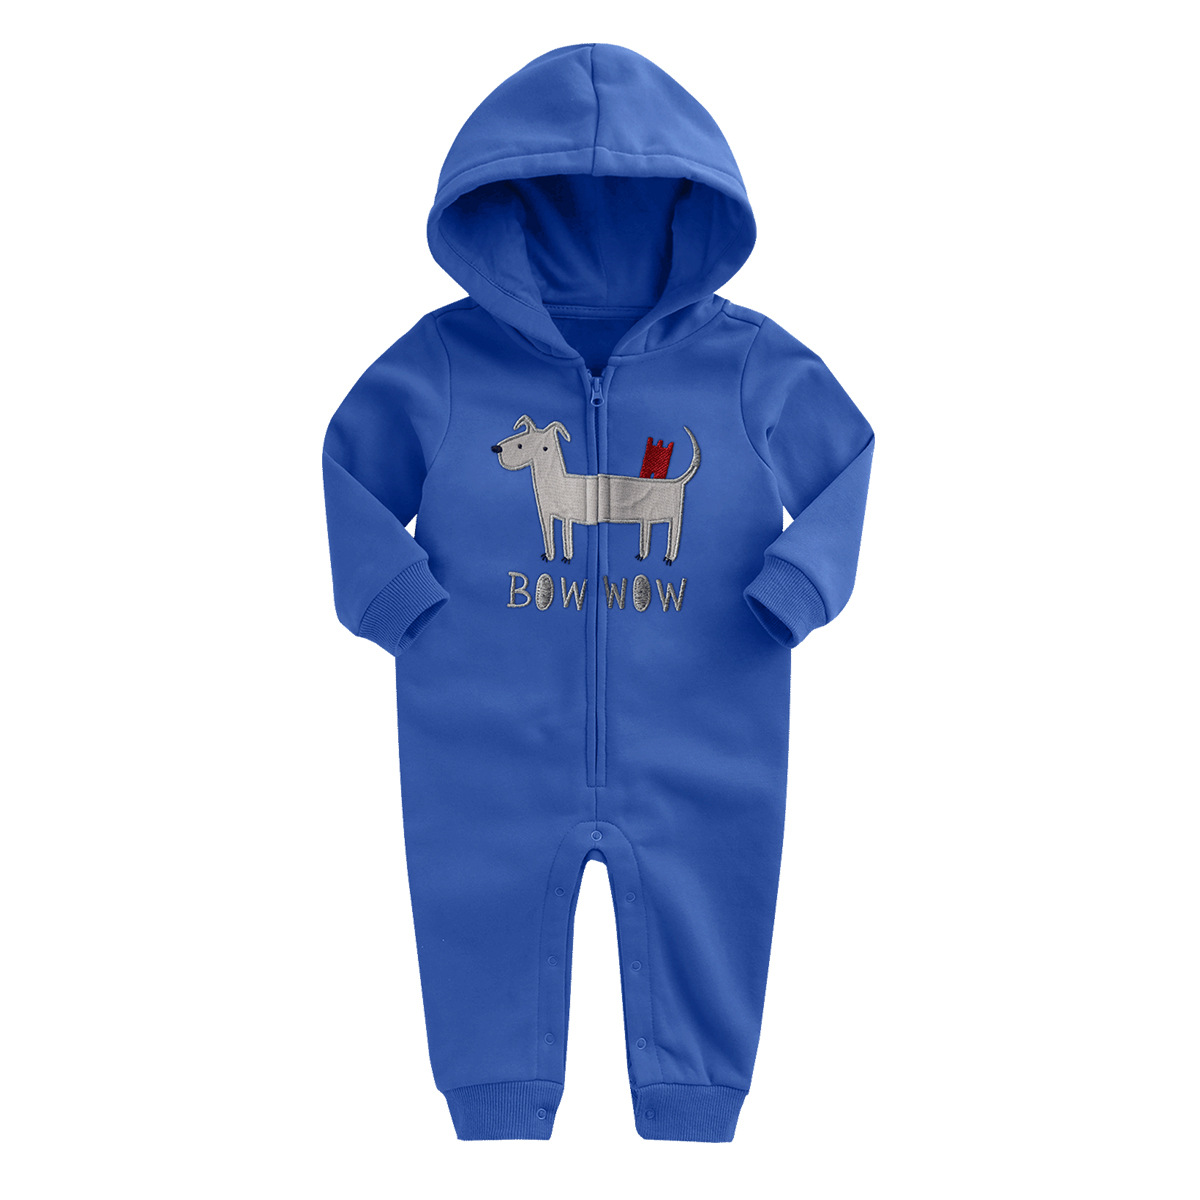 Orangemom official store Baby Boy Clothes and girl baby clothing ...